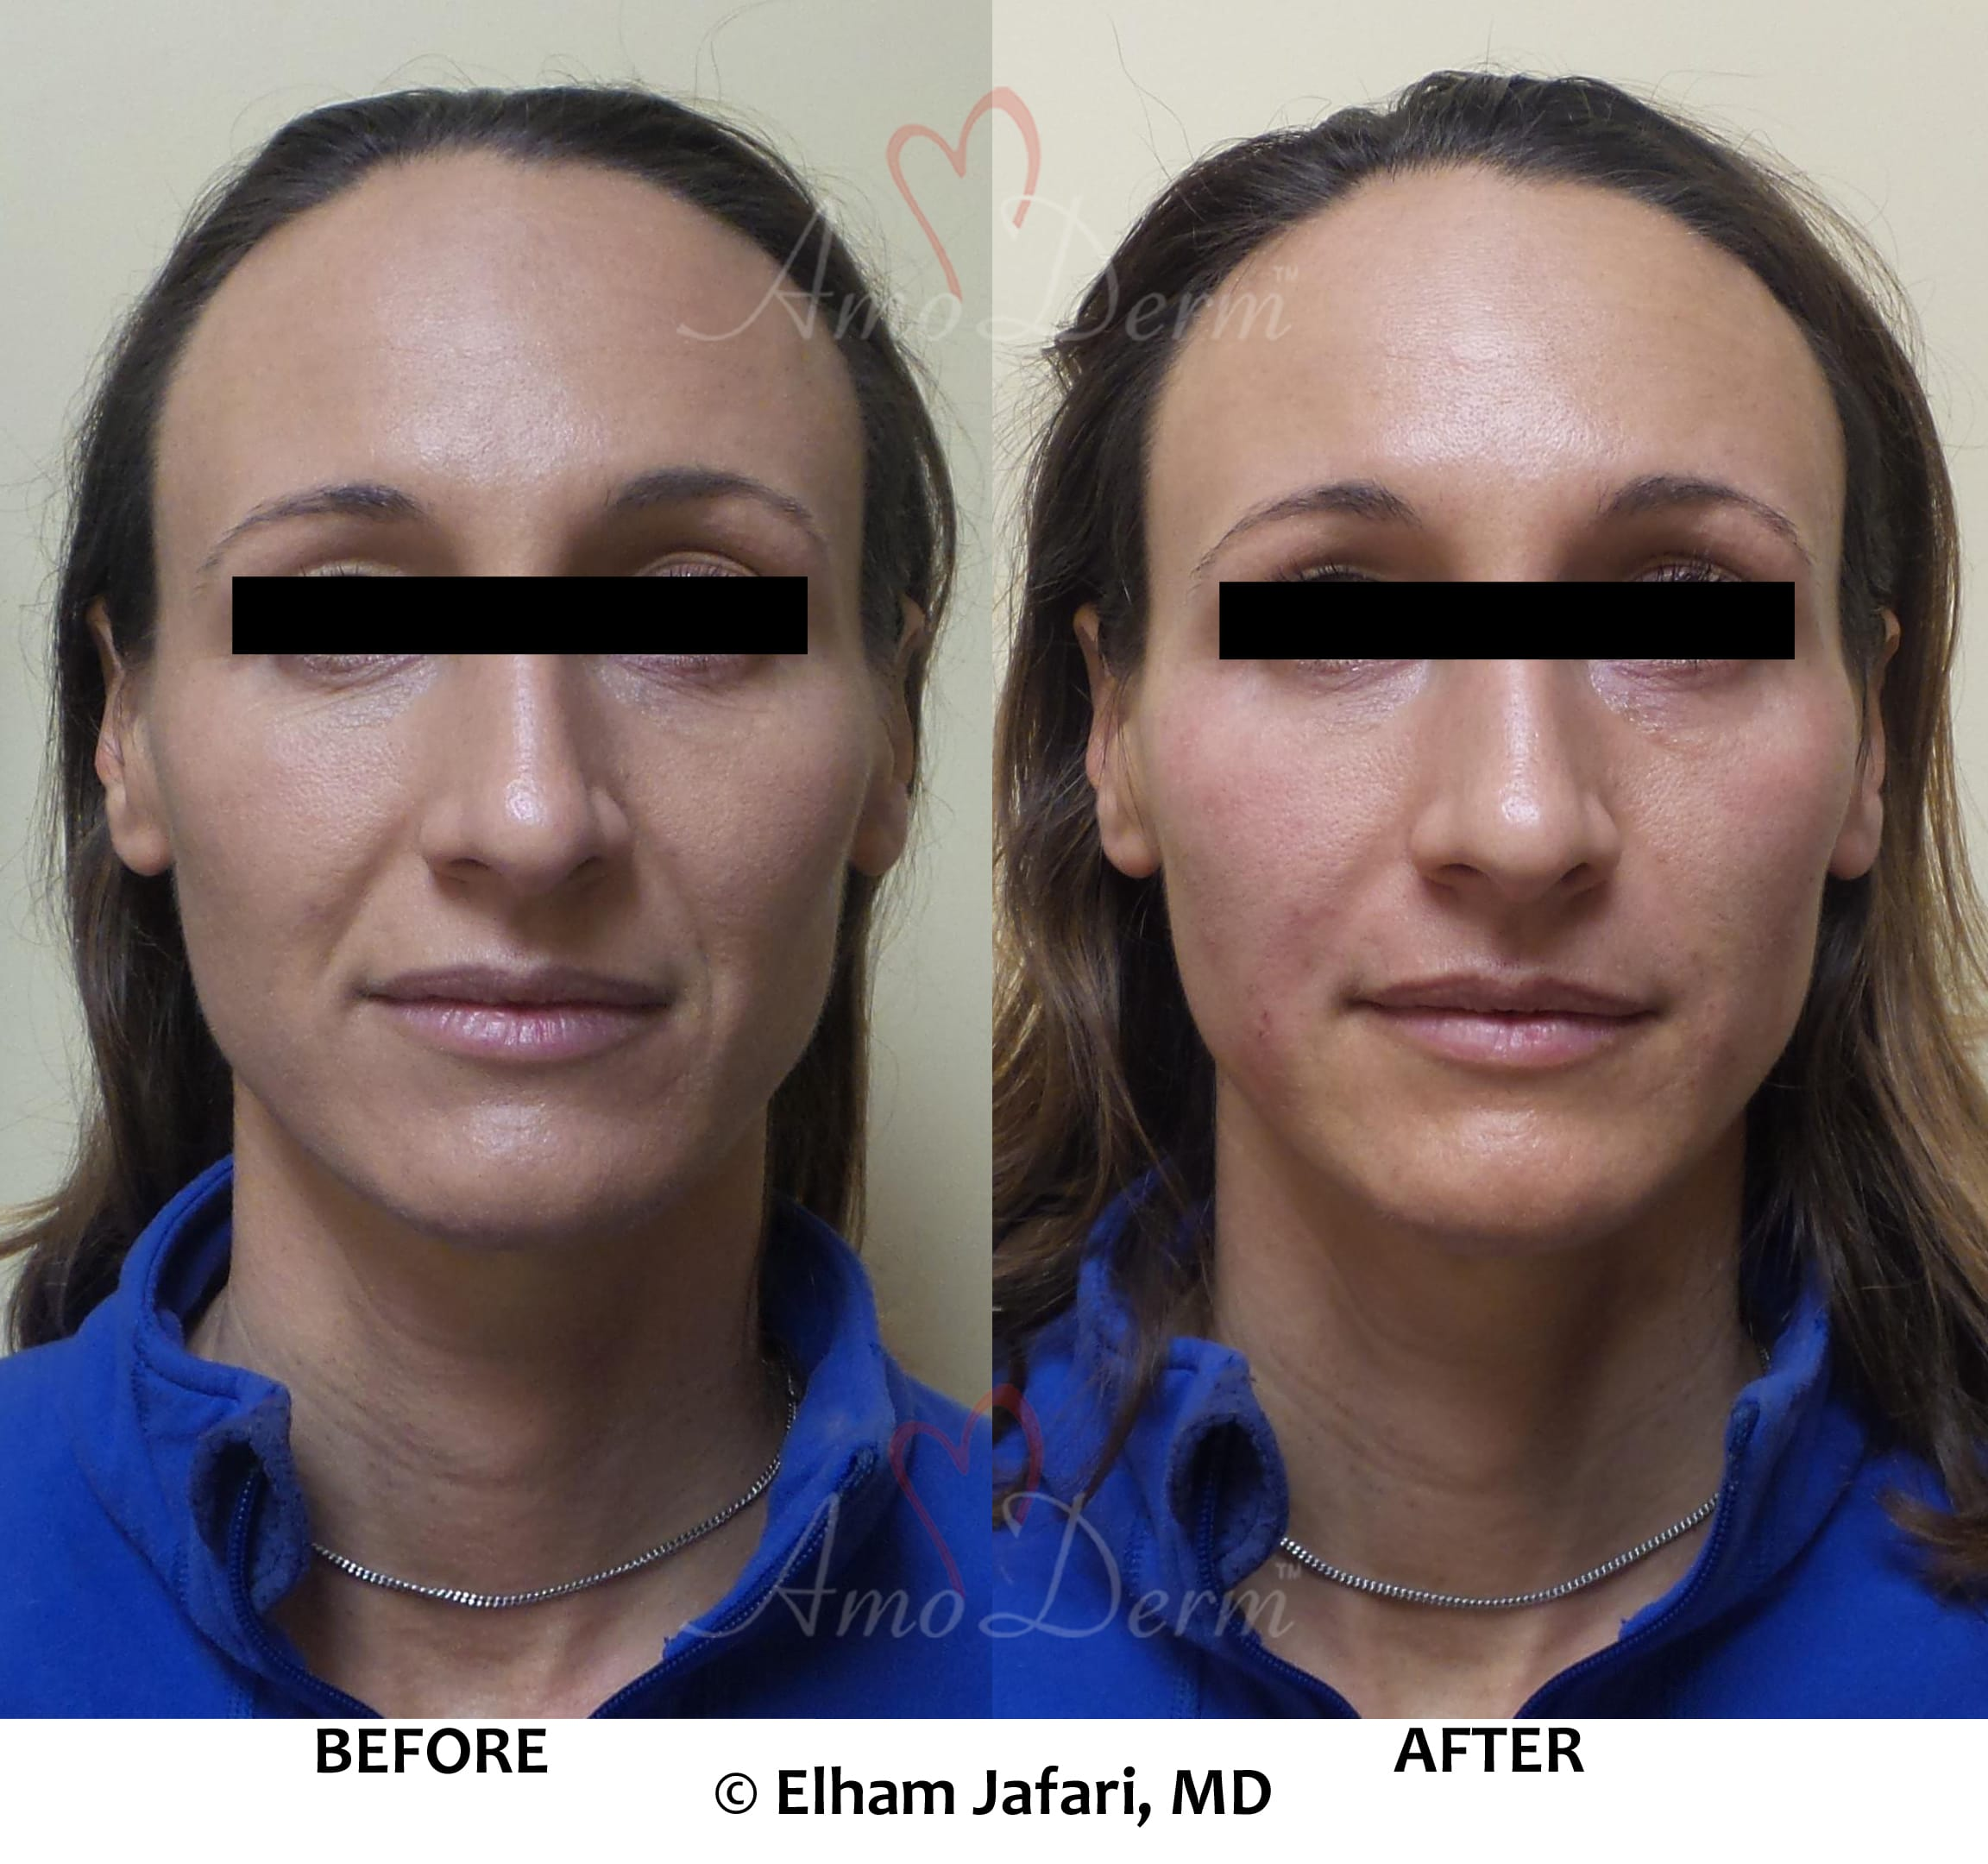 Treatment of nasolabial folds and cheek